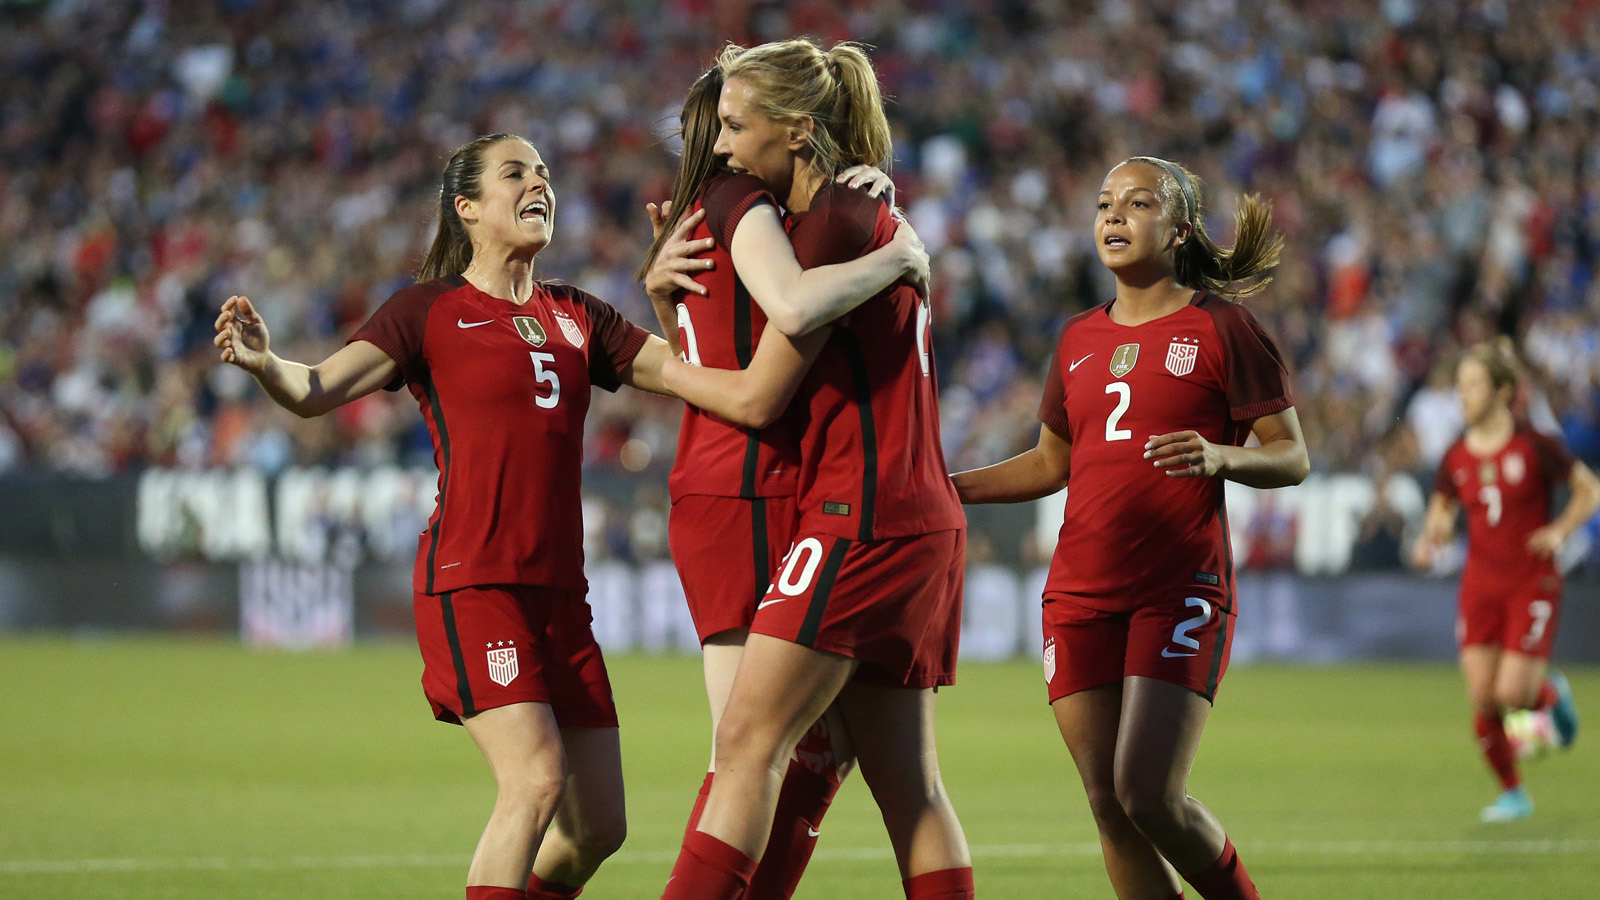 Usa womens national soccer team wallpaper labzada wallpaper 7 takeaways from the uswnt s 4 0 thrashing of russia fox sports publicscrutiny Image collections